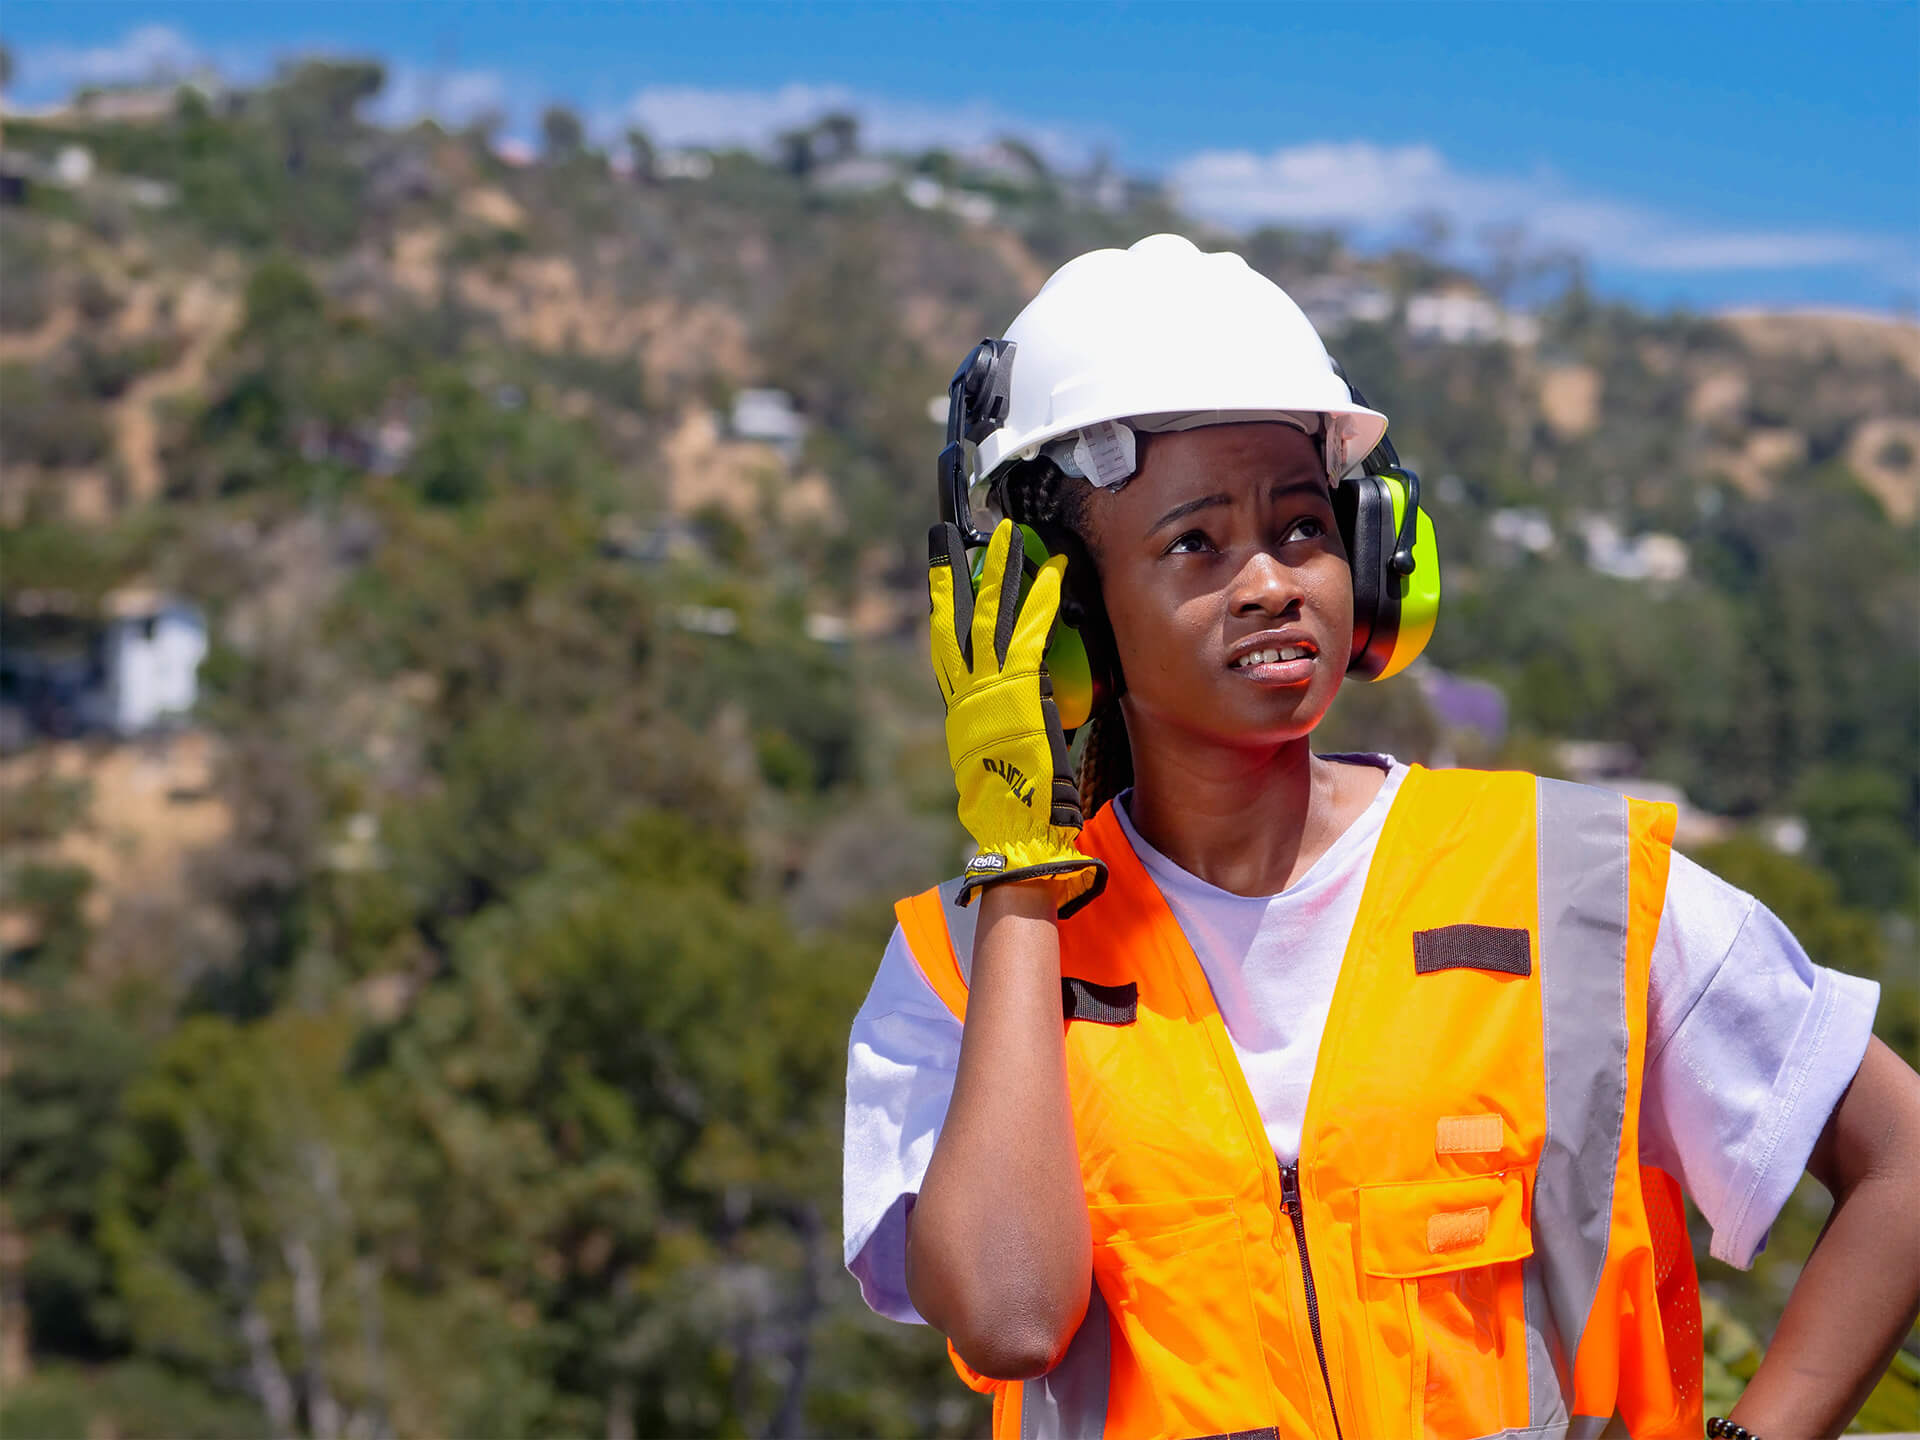 What professions can cause hearing loss?